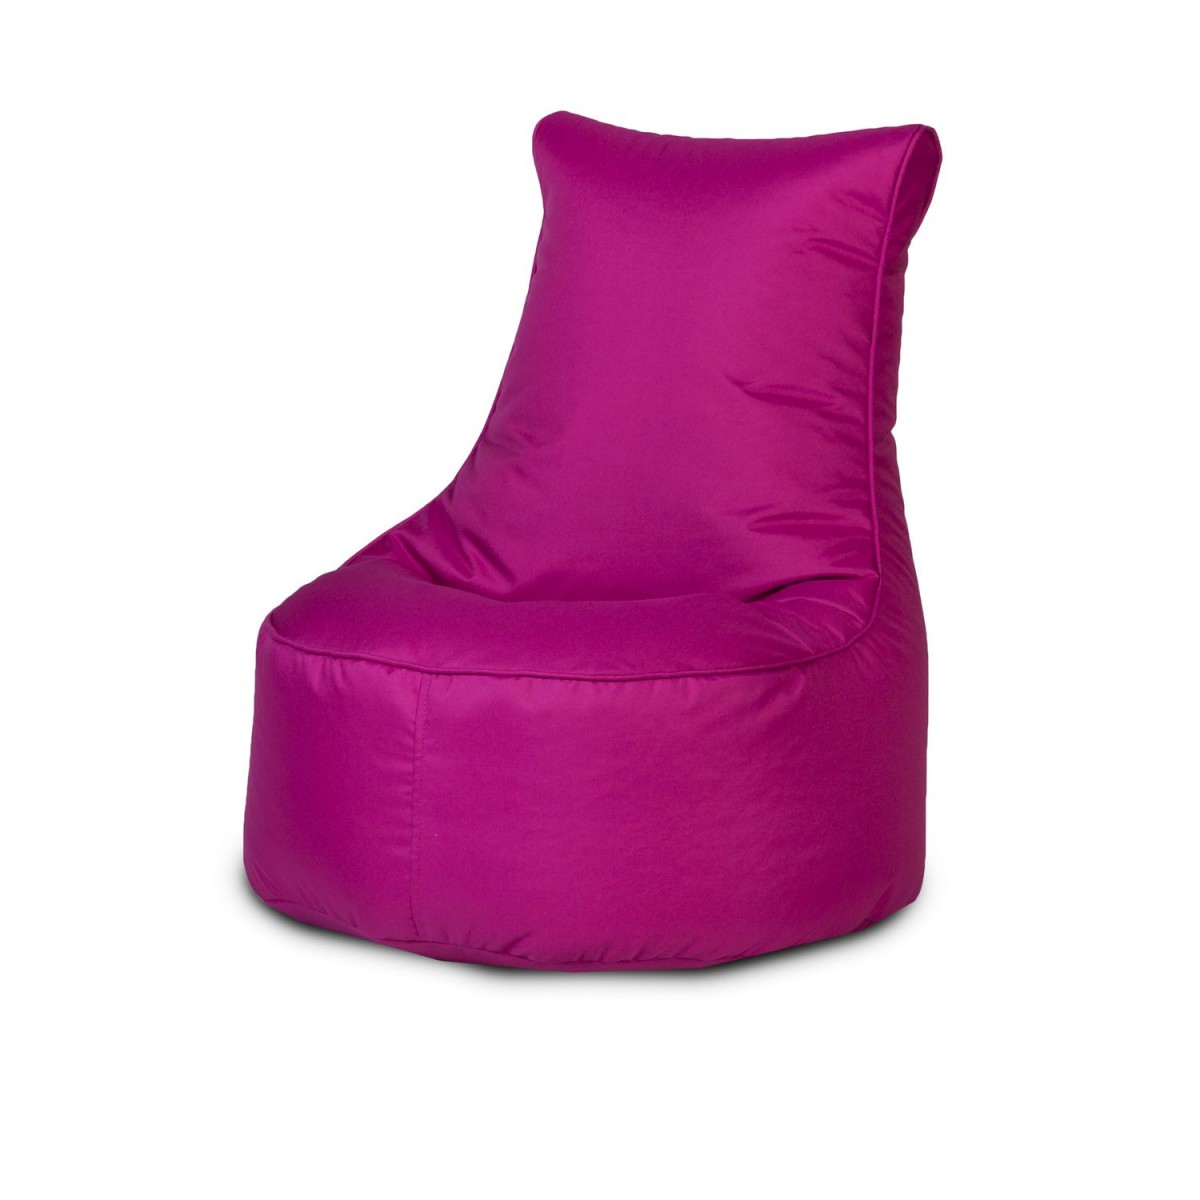 Fotel Seat S Poliester Soft